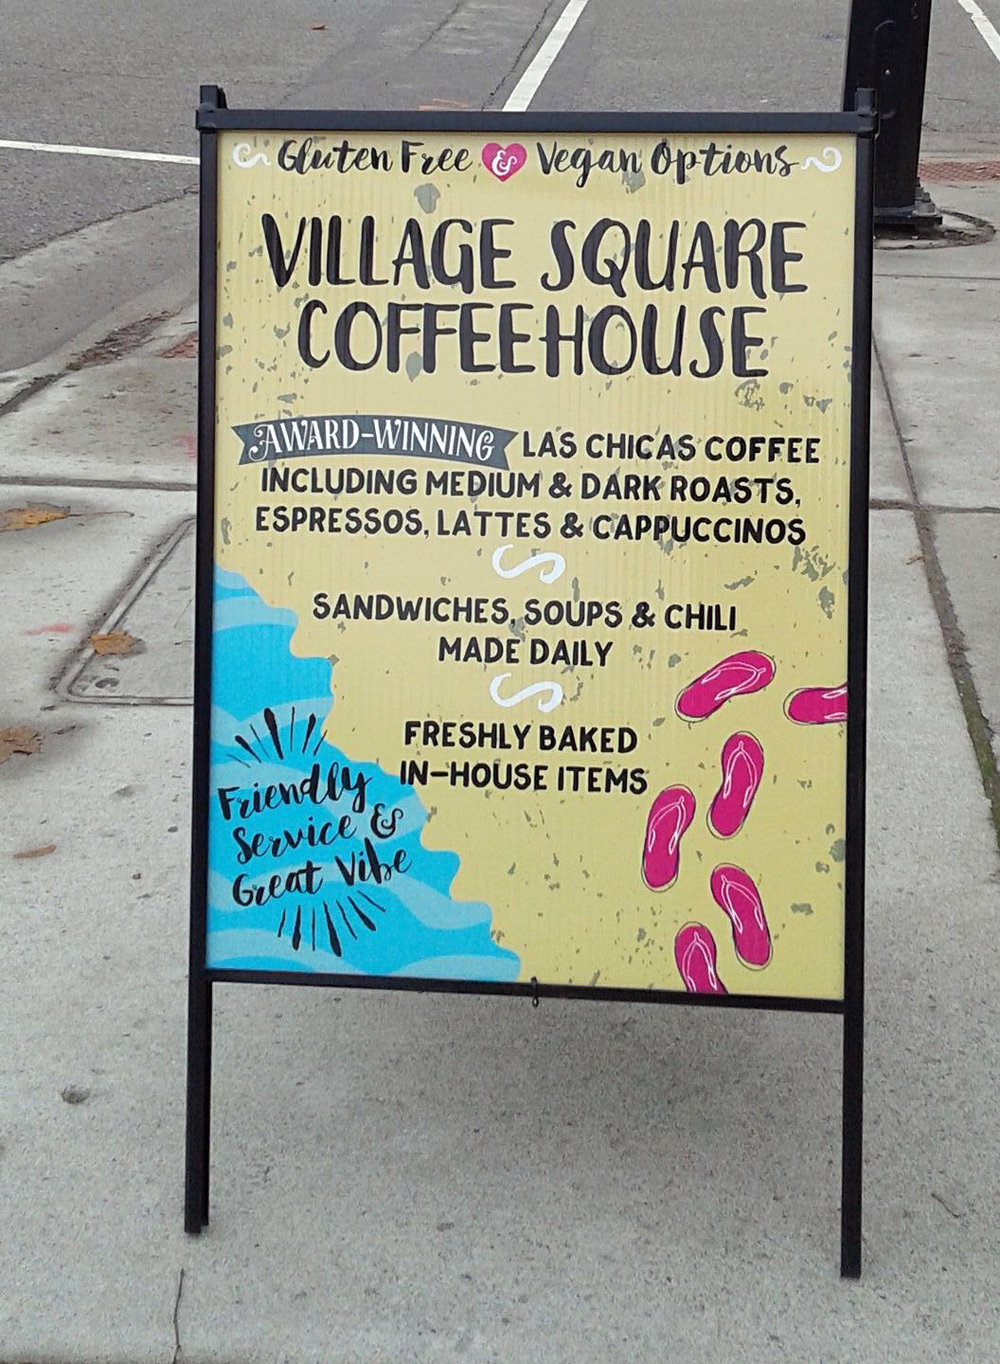 CoffeeHouse Menu Signage.jpg